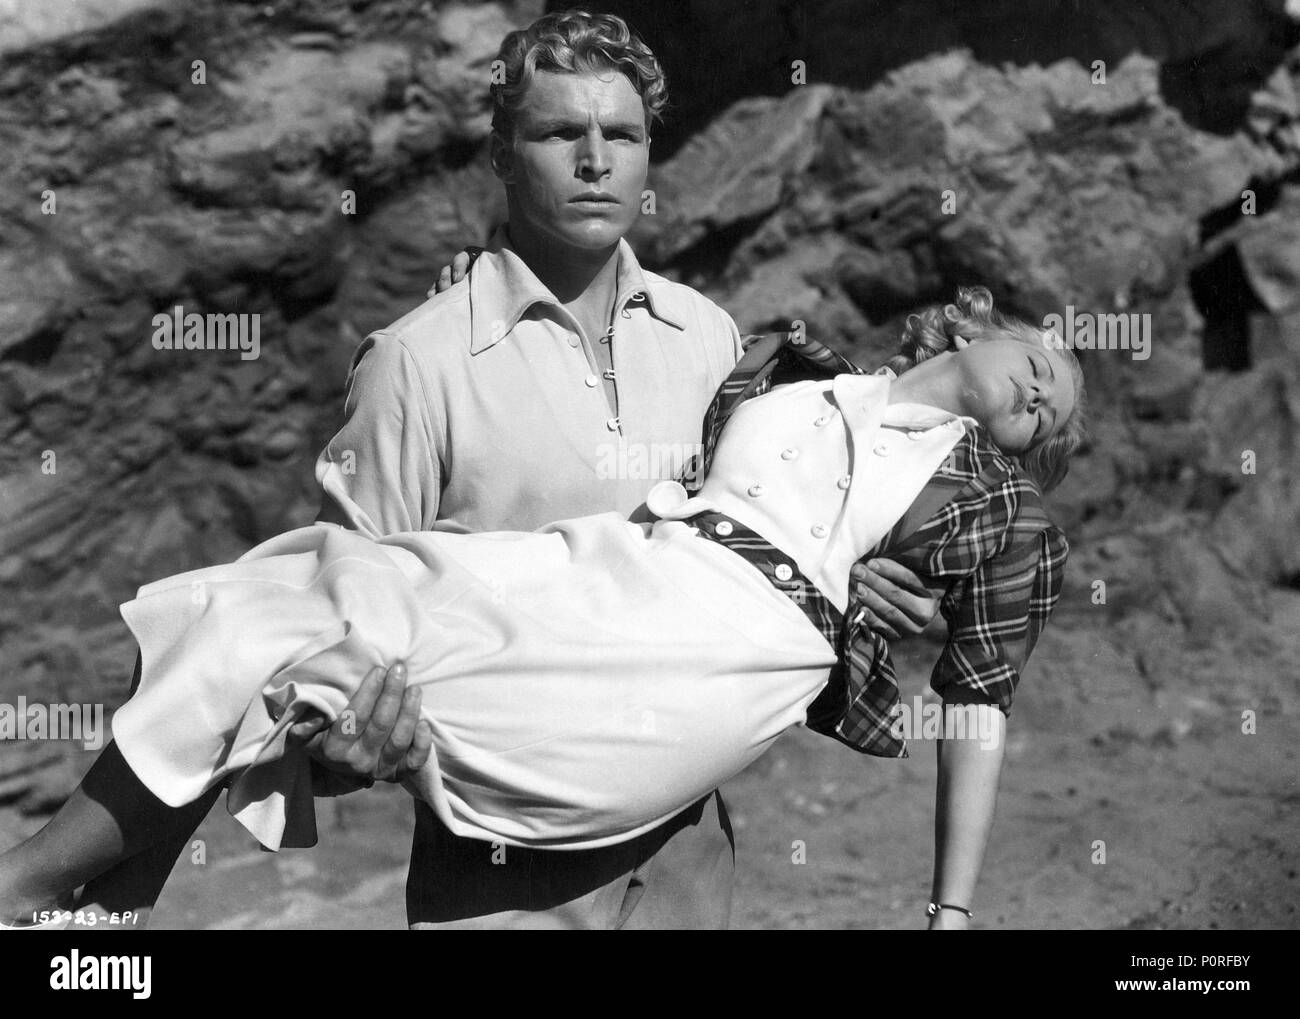 Flash Gordon Black and White Stock Photos & Images - Alamy